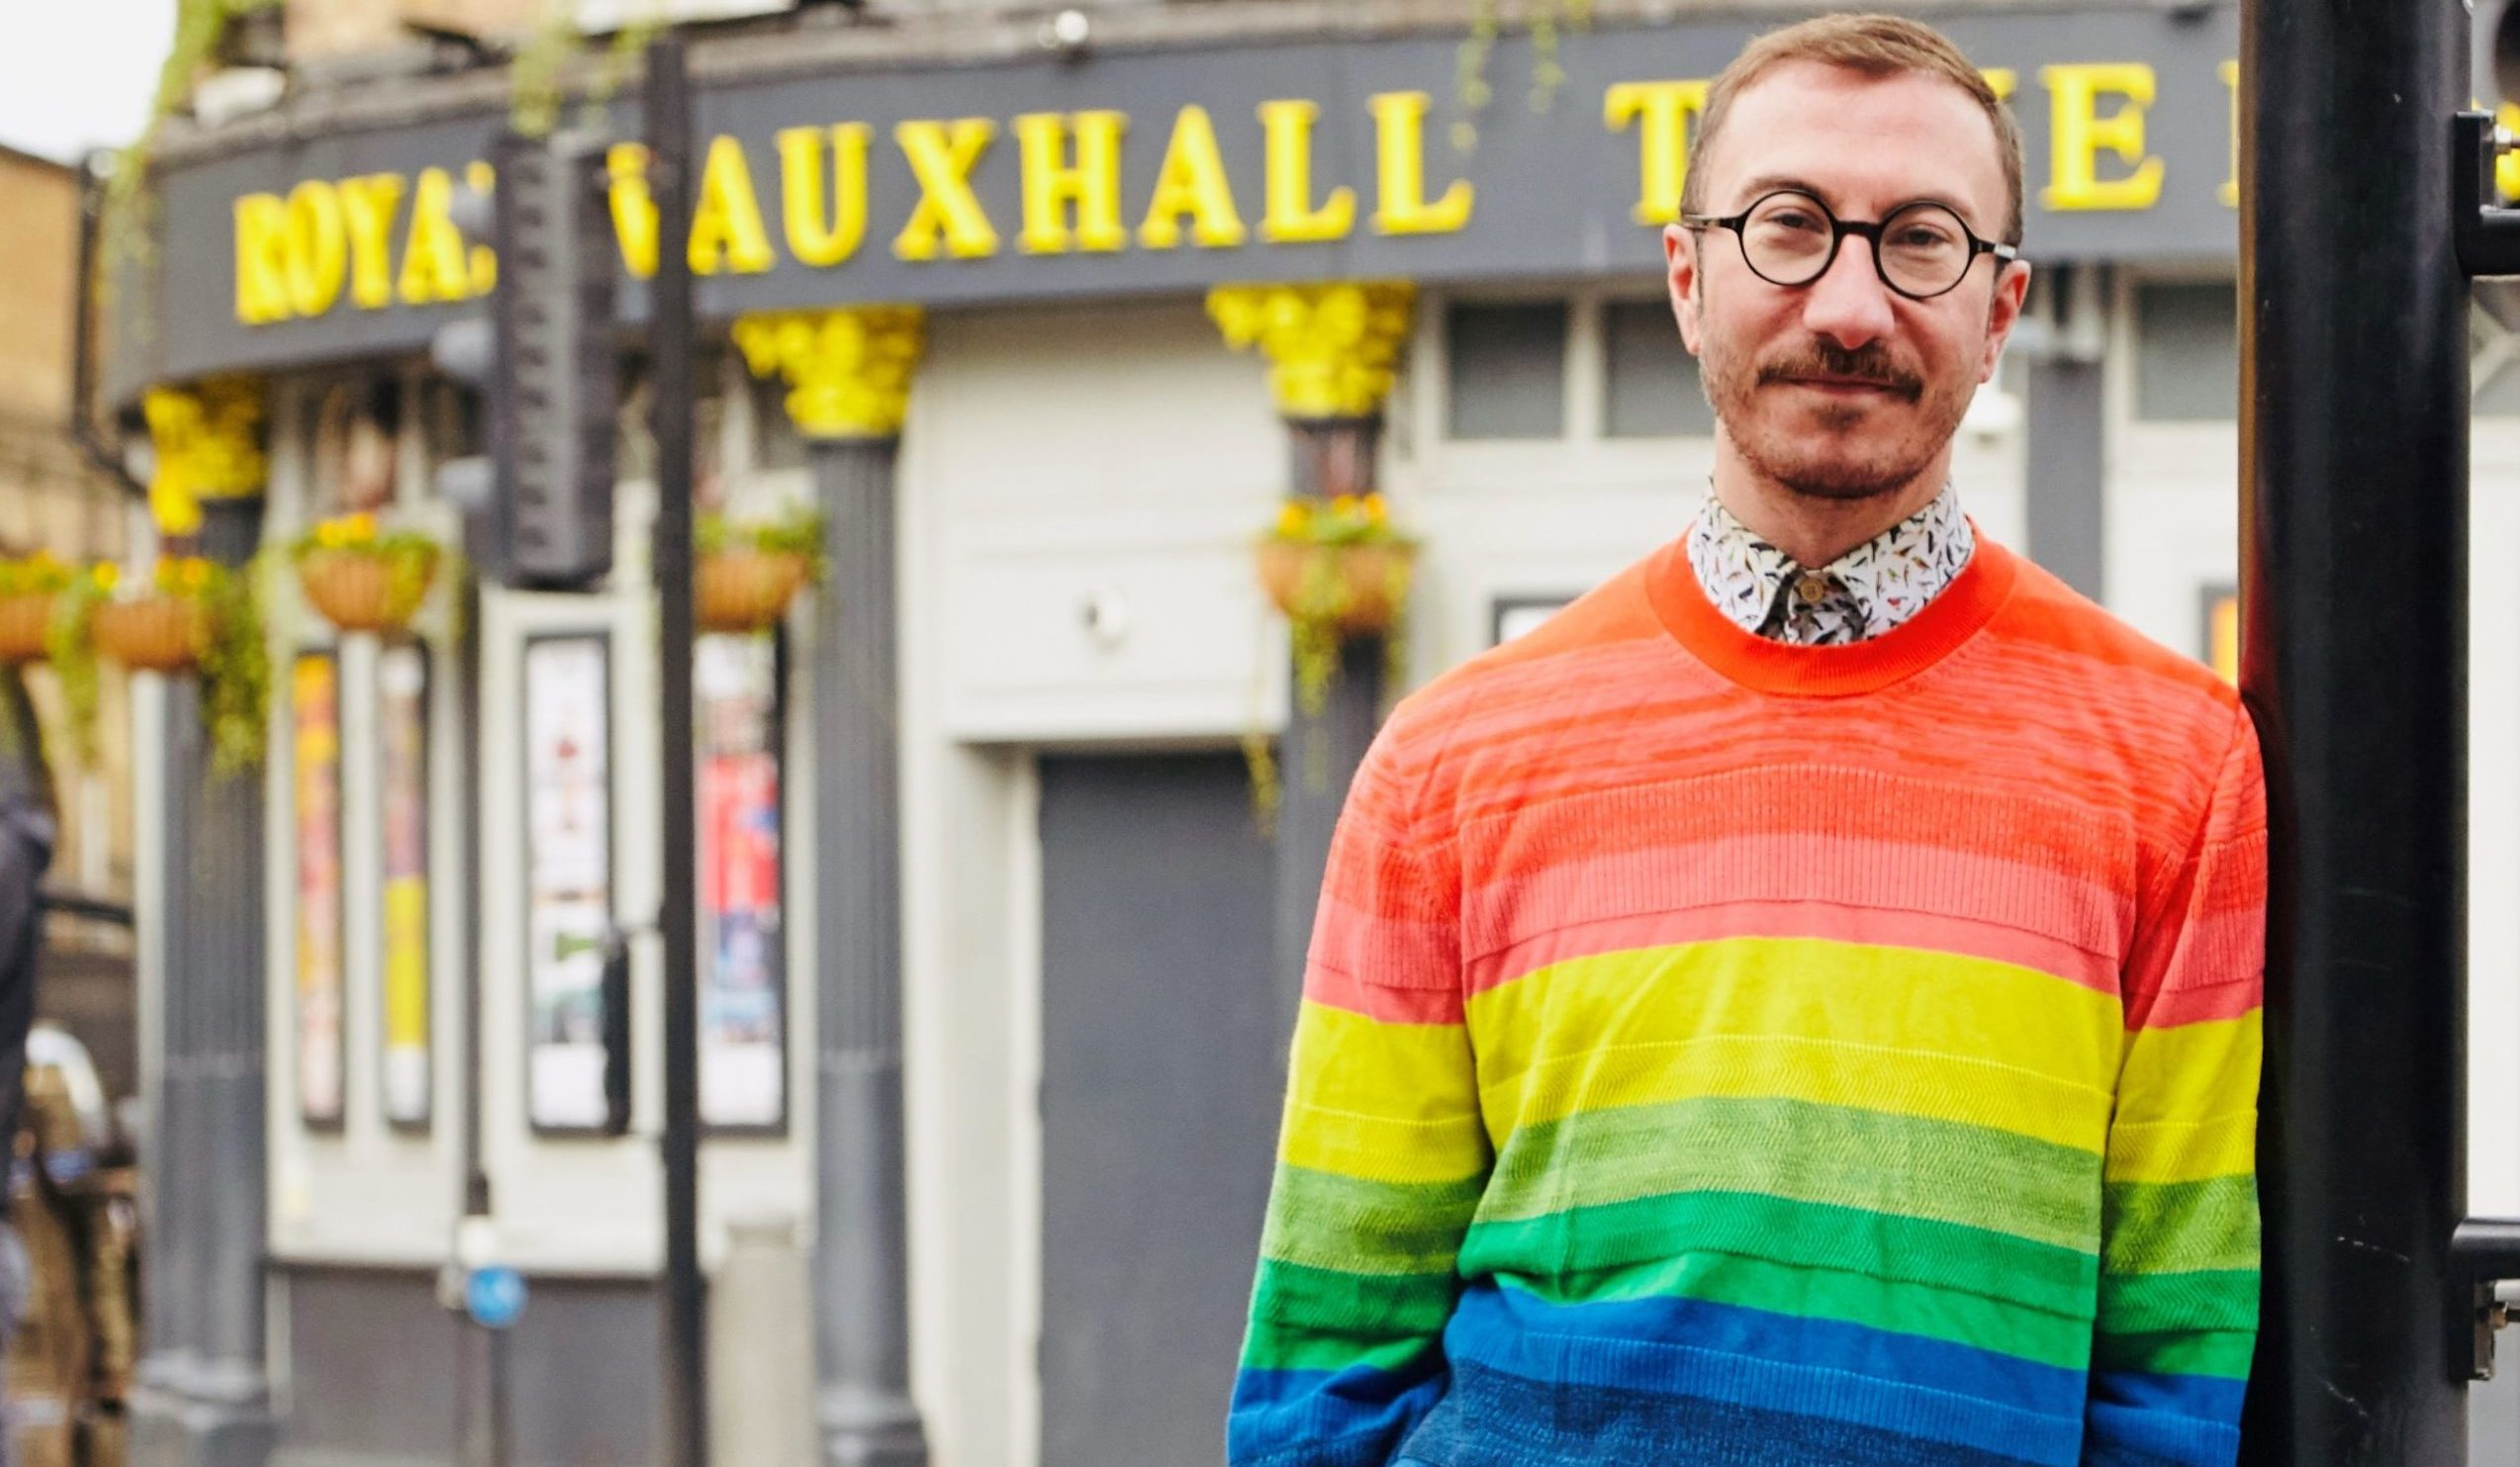 Philip Normal: Meet the UK's first-ever openly HIV-positive mayor